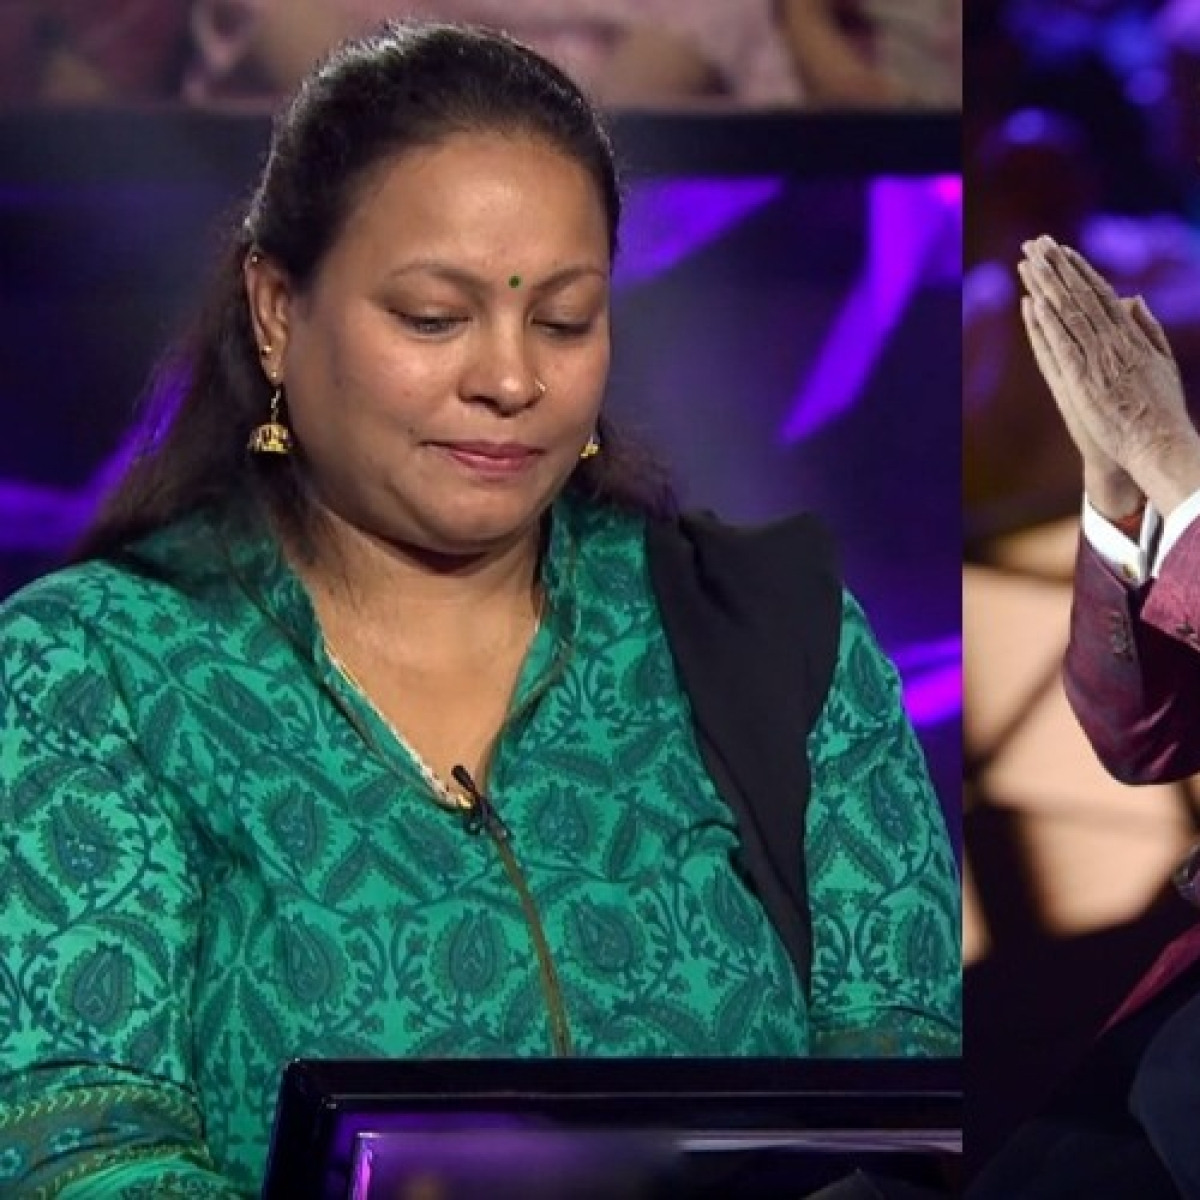 KBC 11: This extremely tough question for Rs 6.4 lakh made Marieatta Mendis quit Amitabh Bachchan's show